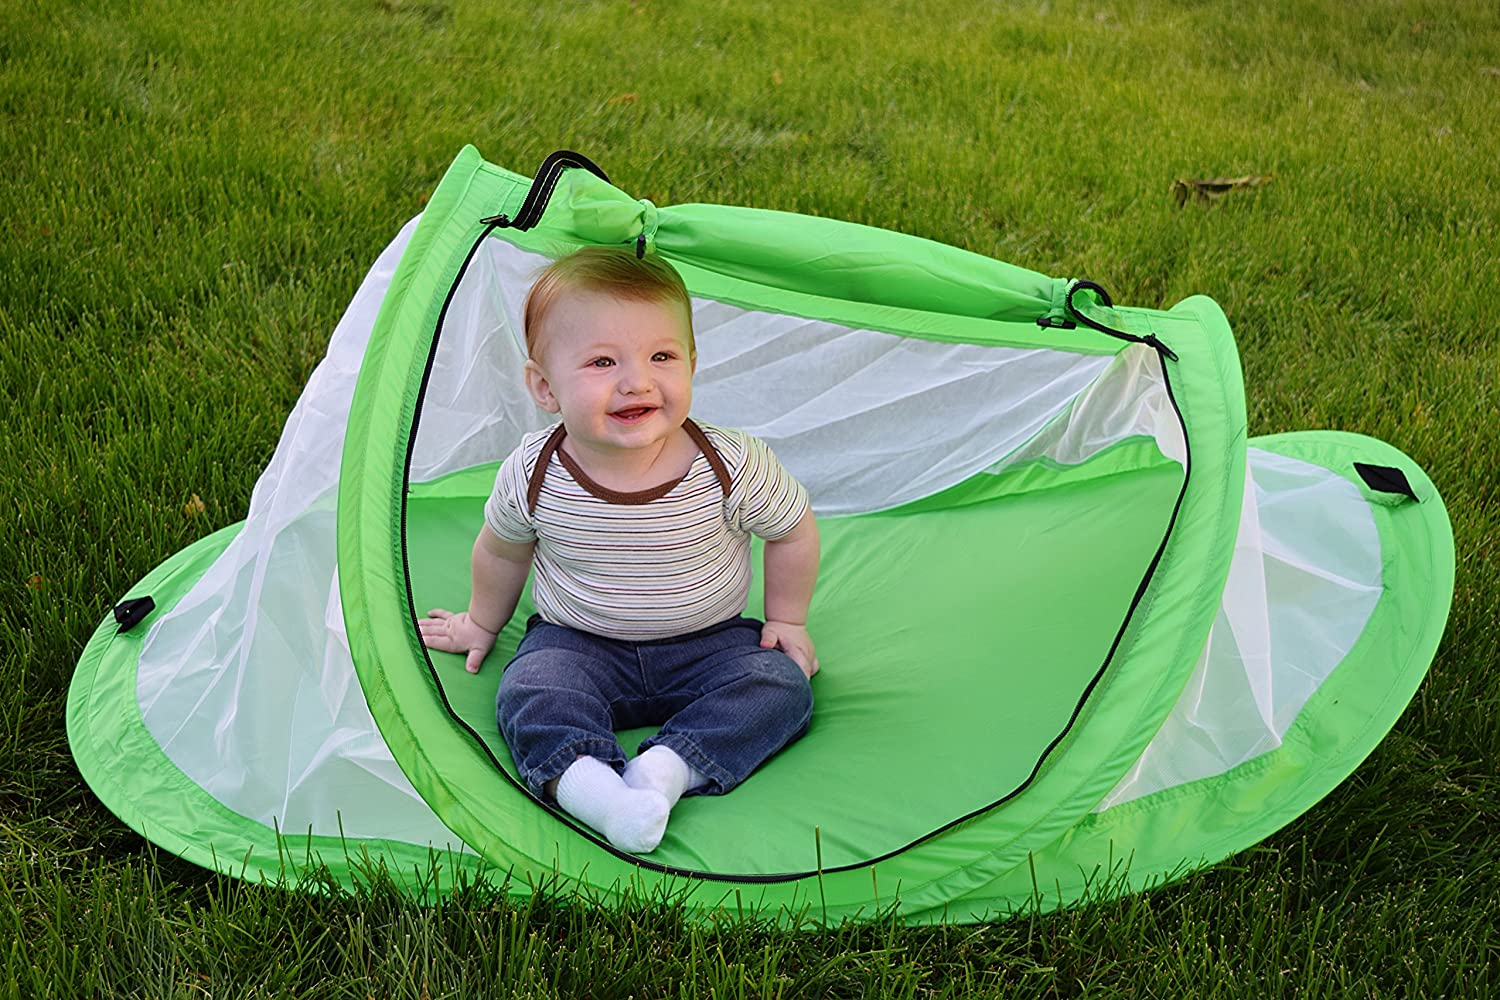 Amazon.com  Baby tent Pop-Up beach tent Instant travel tent for baby Protect from sun u0026 bugs (Green)  Baby  sc 1 st  Amazon.com & Amazon.com : Baby tent Pop-Up beach tent Instant travel tent for ...